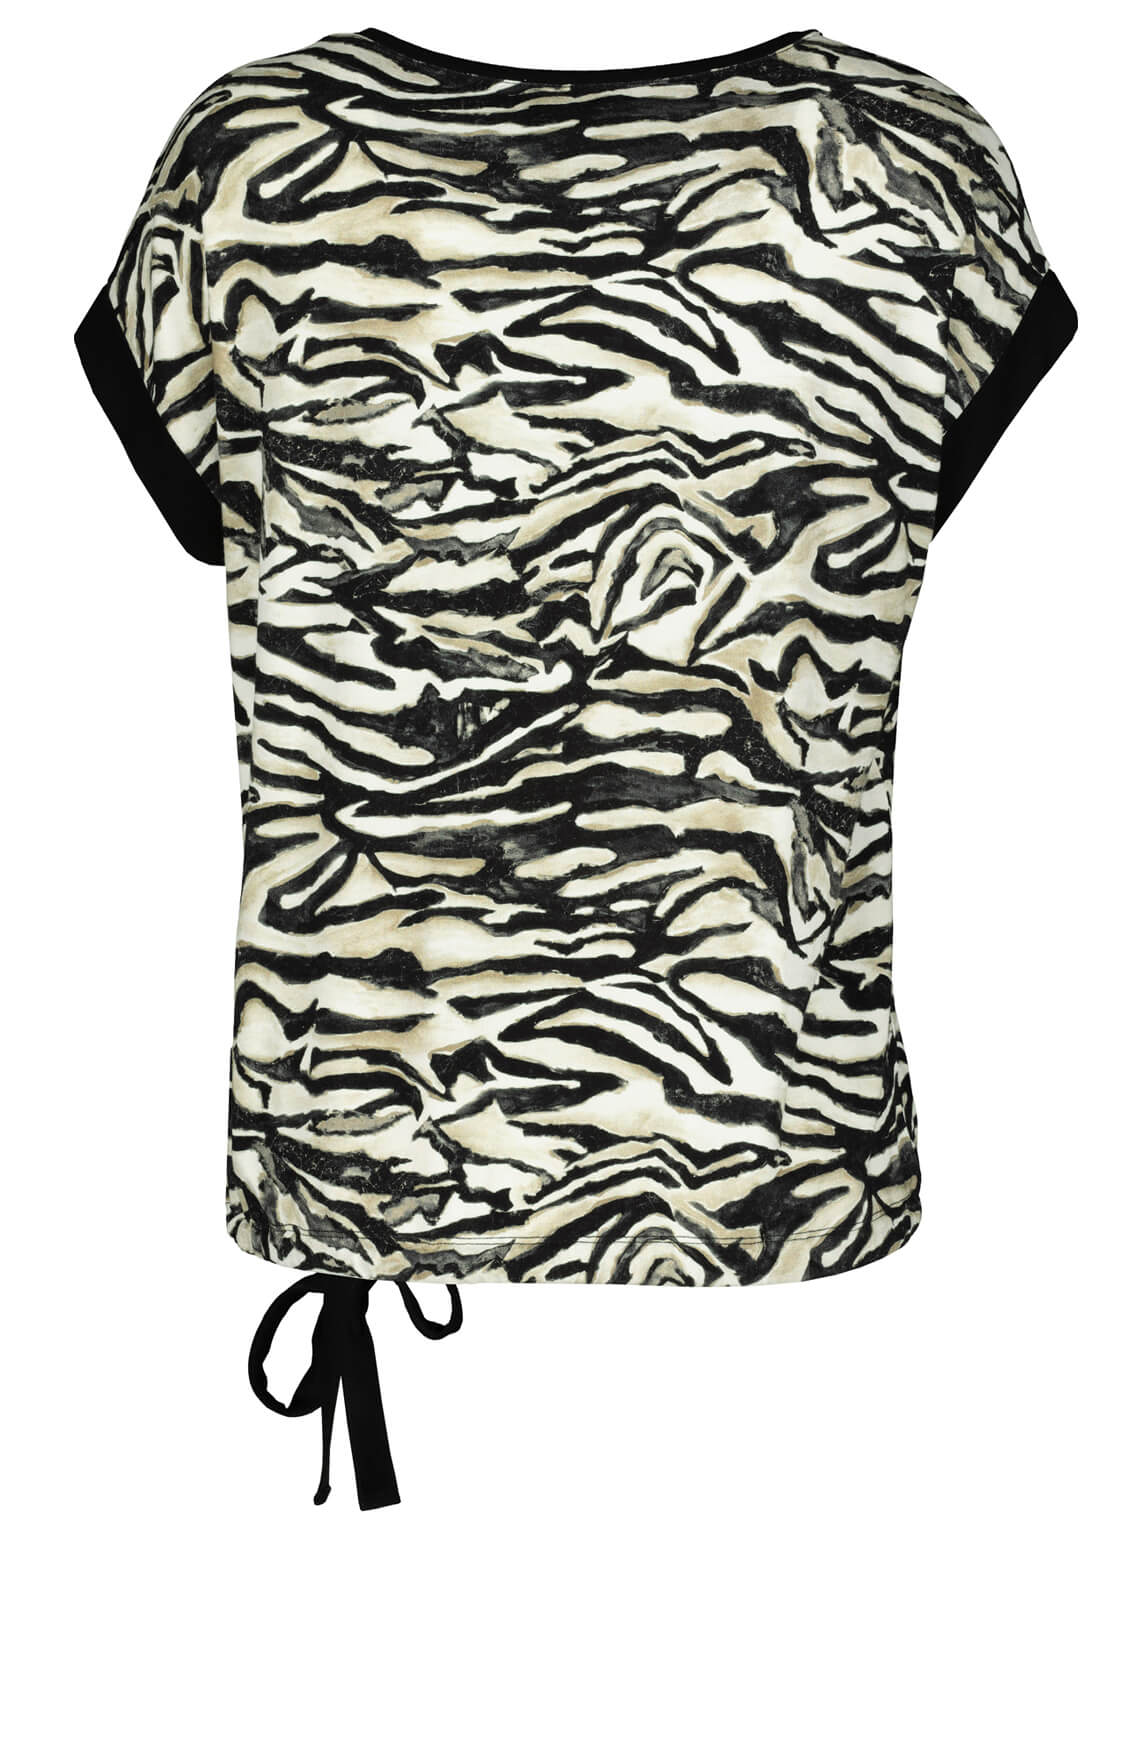 Monari Dames Shirt met animalprint zwart